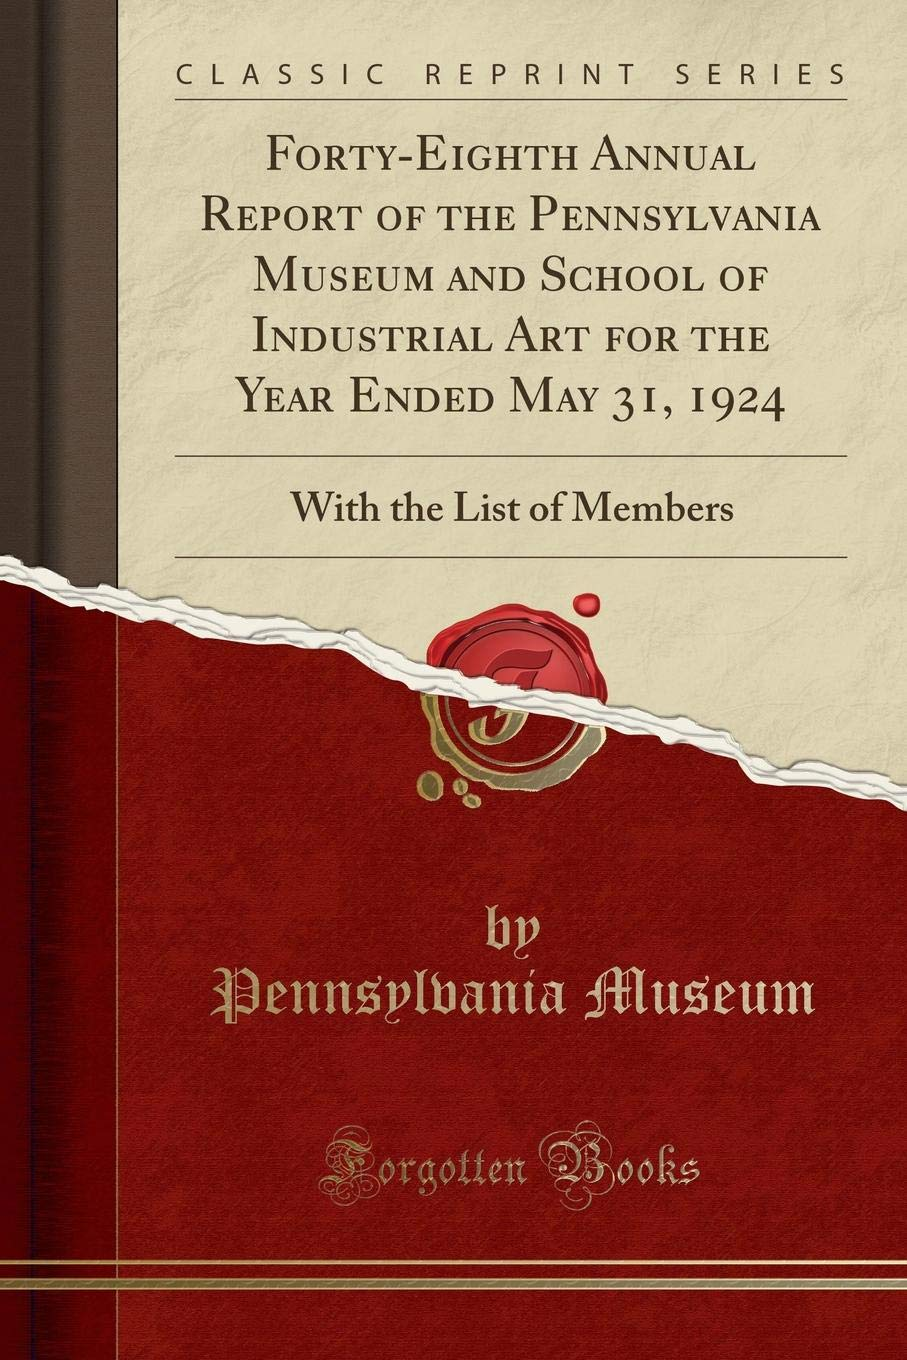 Download Forty-Eighth Annual Report of the Pennsylvania Museum and School of Industrial Art for the Year Ended May 31, 1924: With the List of Members (Classic Reprint) PDF